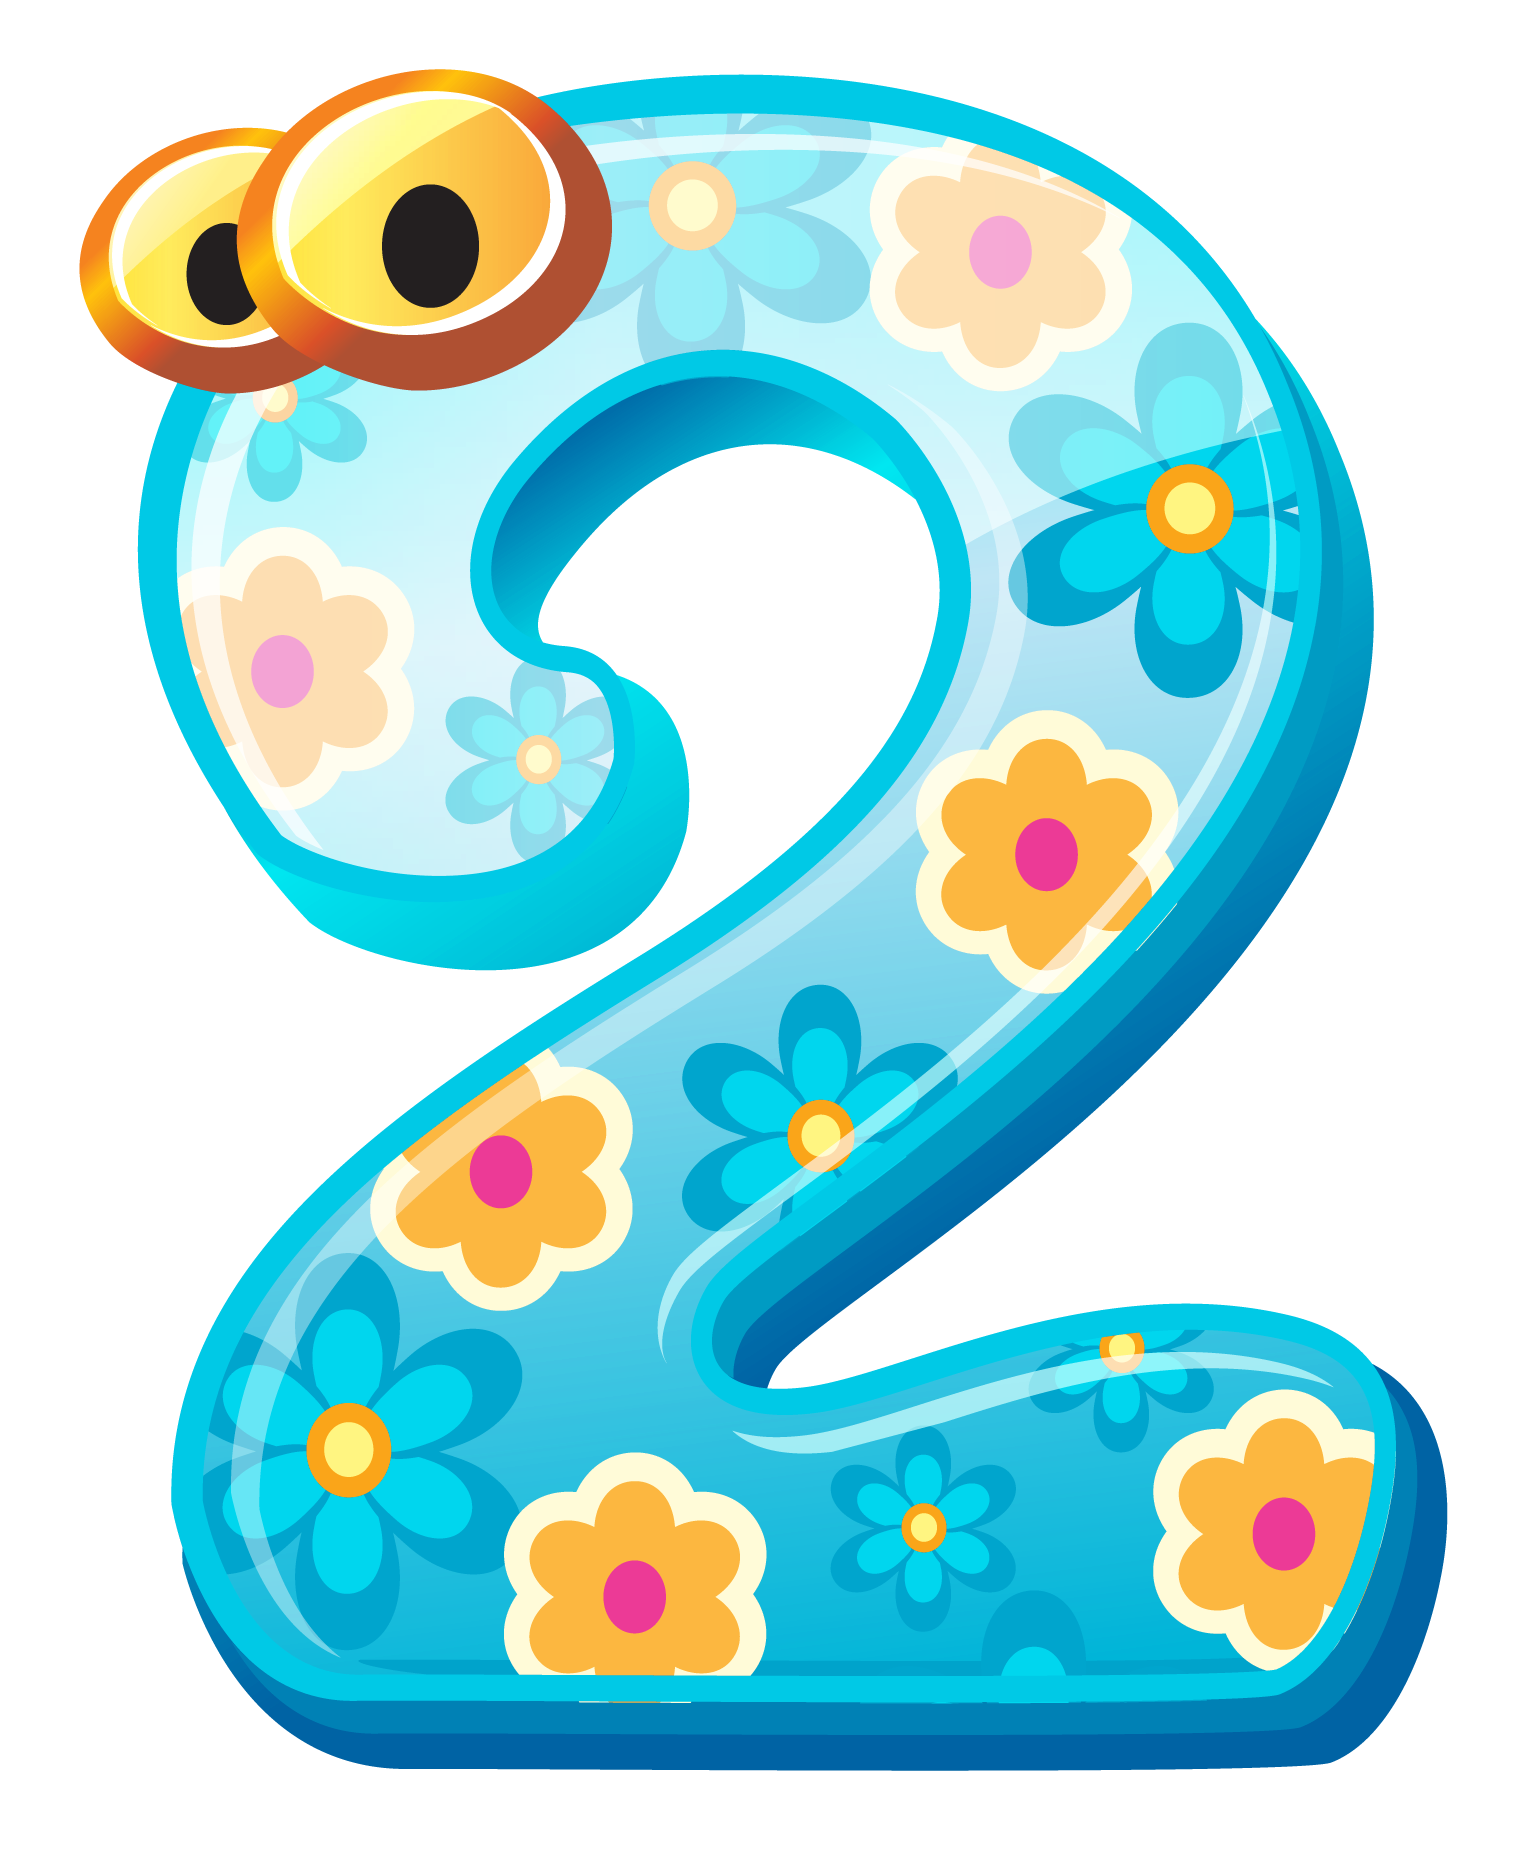 Png number 2. Cute two clipart image